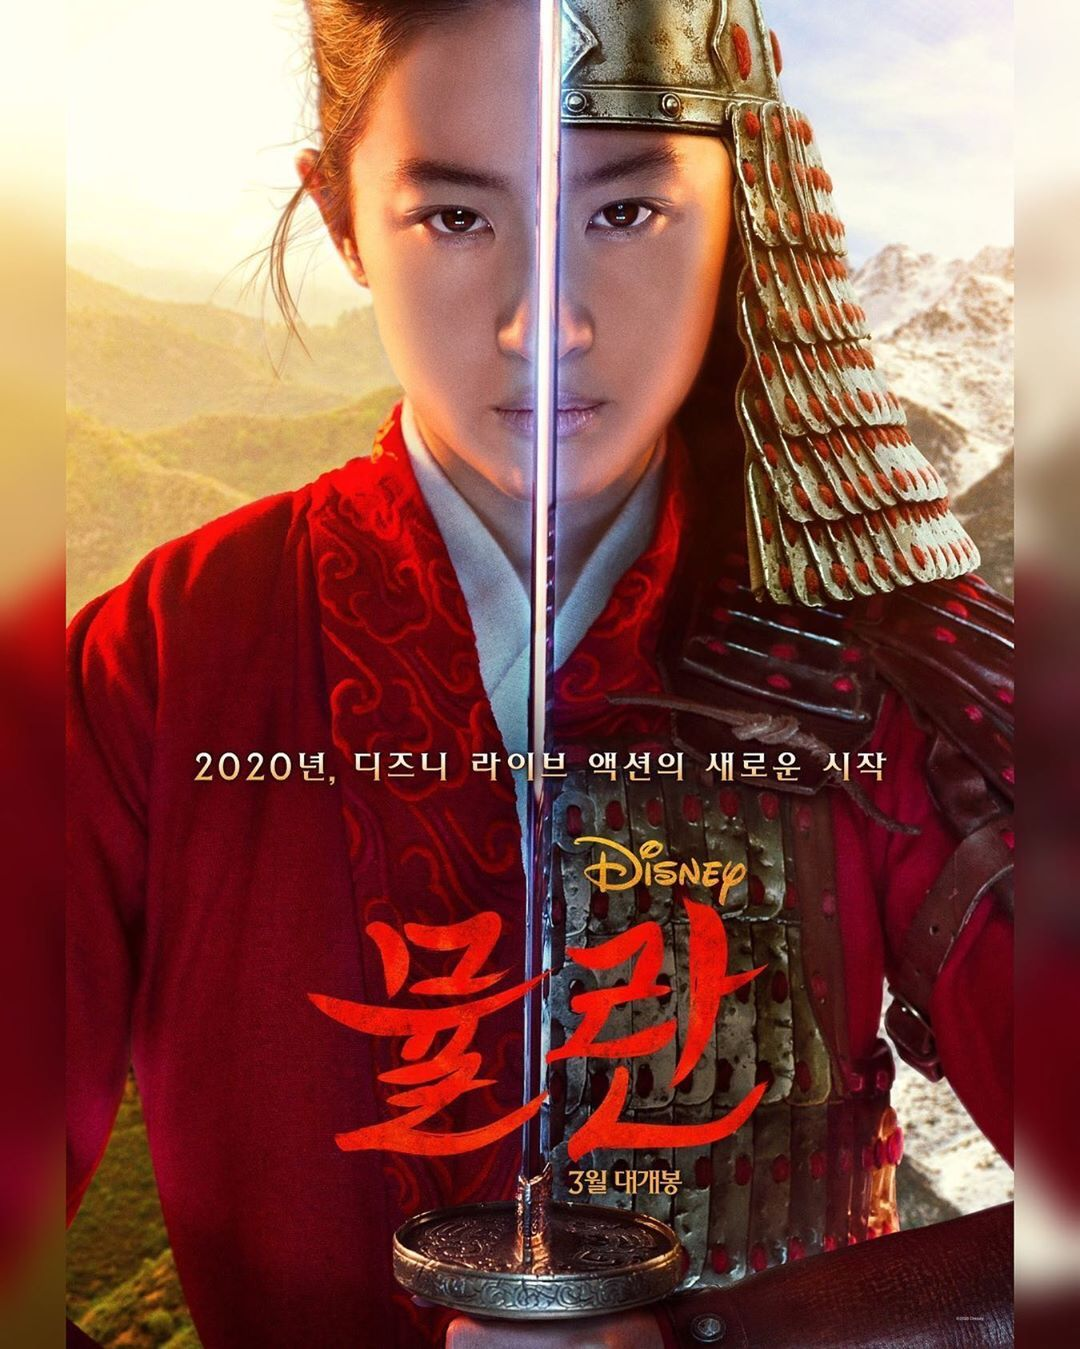 Mulan 2020 Korean Poster Dir Niki Caro Cast Liu Yifei Yoson An Jason Scott Lee Donnie Yen Mulan Liveaction Disne In 2020 Mulan Movie Mulan Watch Mulan